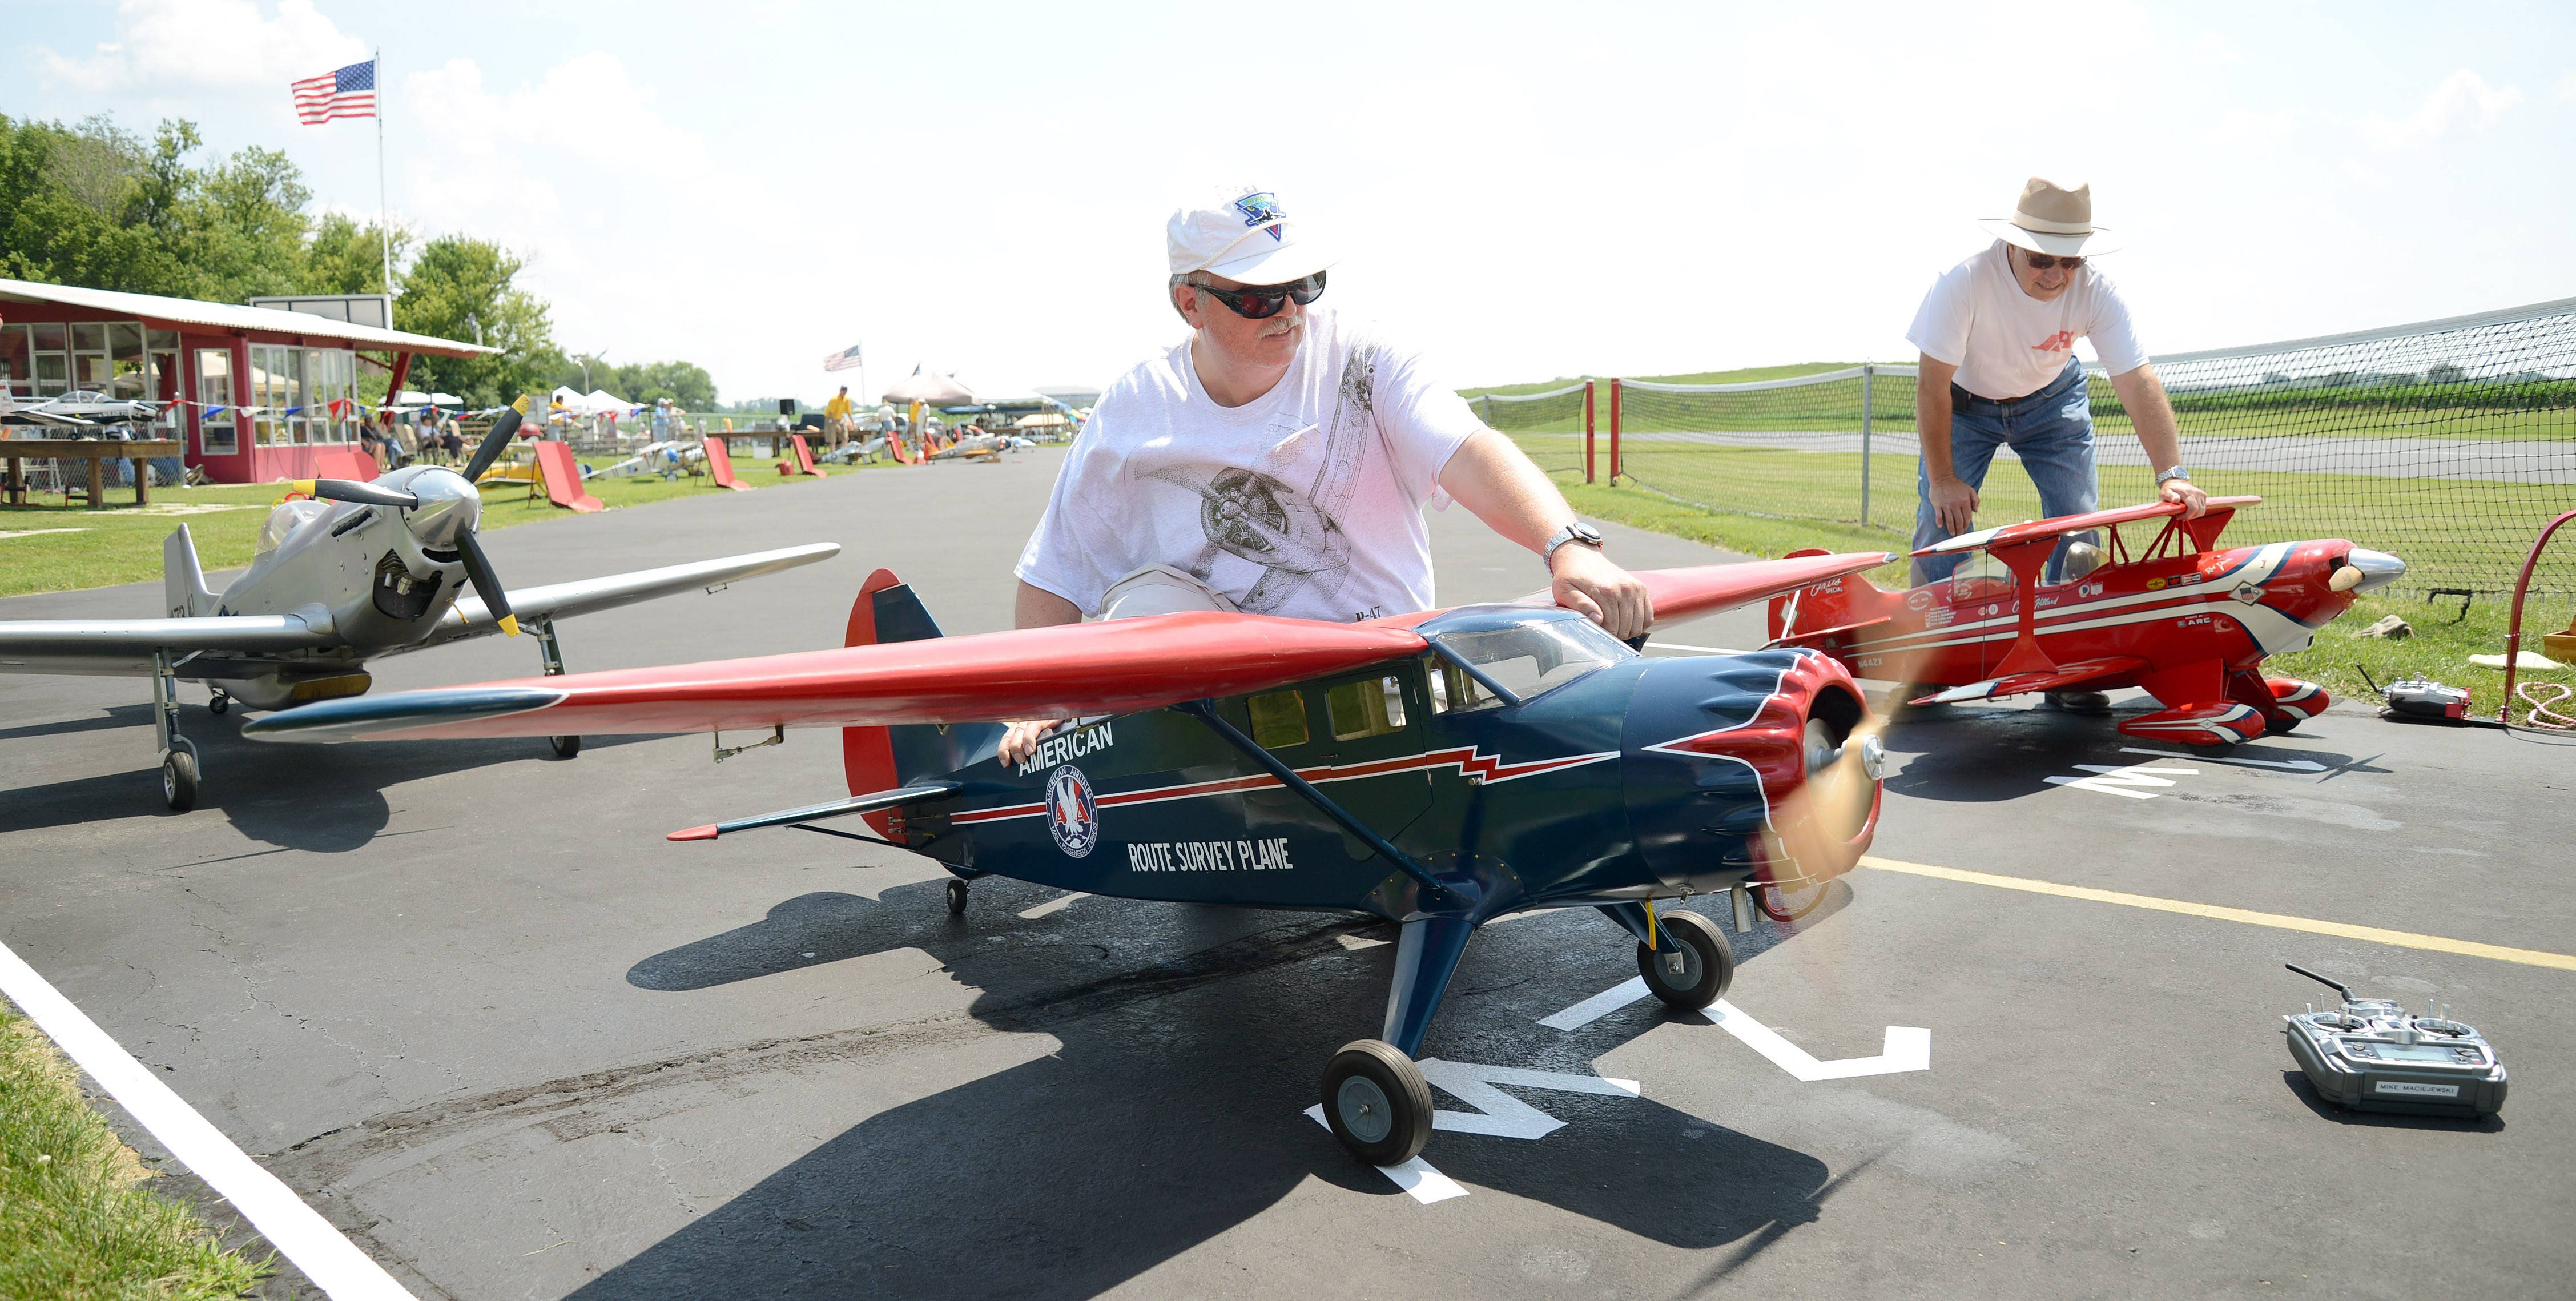 Mike Maciejewski, of St. Charles, hangs onto his Stintson Reliant R9 plane as the engine warms up, readying for take off, at the Fox Valley Aero Club's Windy City Warbird and Classics model airplane show in St. Charles on Friday. Maciejewski a member of the Surburban R.C. Barnstormers, Inc. model airplane flying club for about 30 years, often flying at Fox Valley Aero Club events.